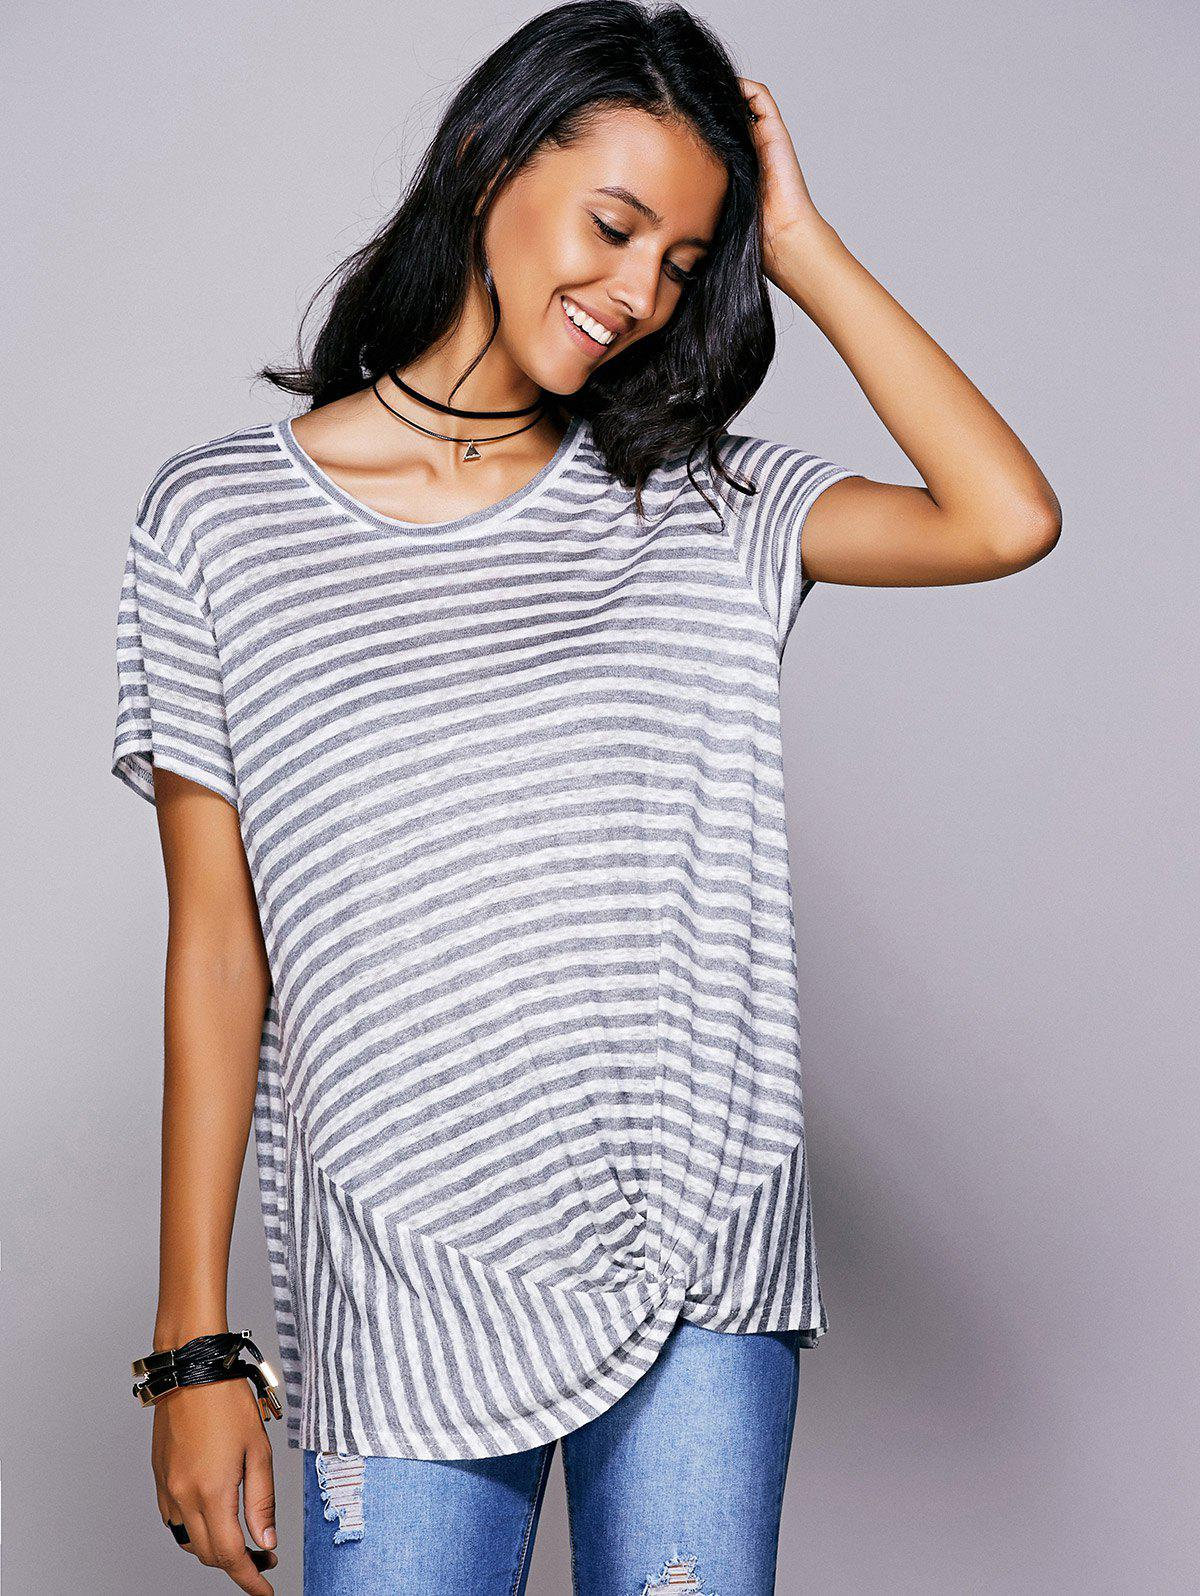 Casual Women's Scoop Neck Striped Twisted T-Shirt - GRAY L